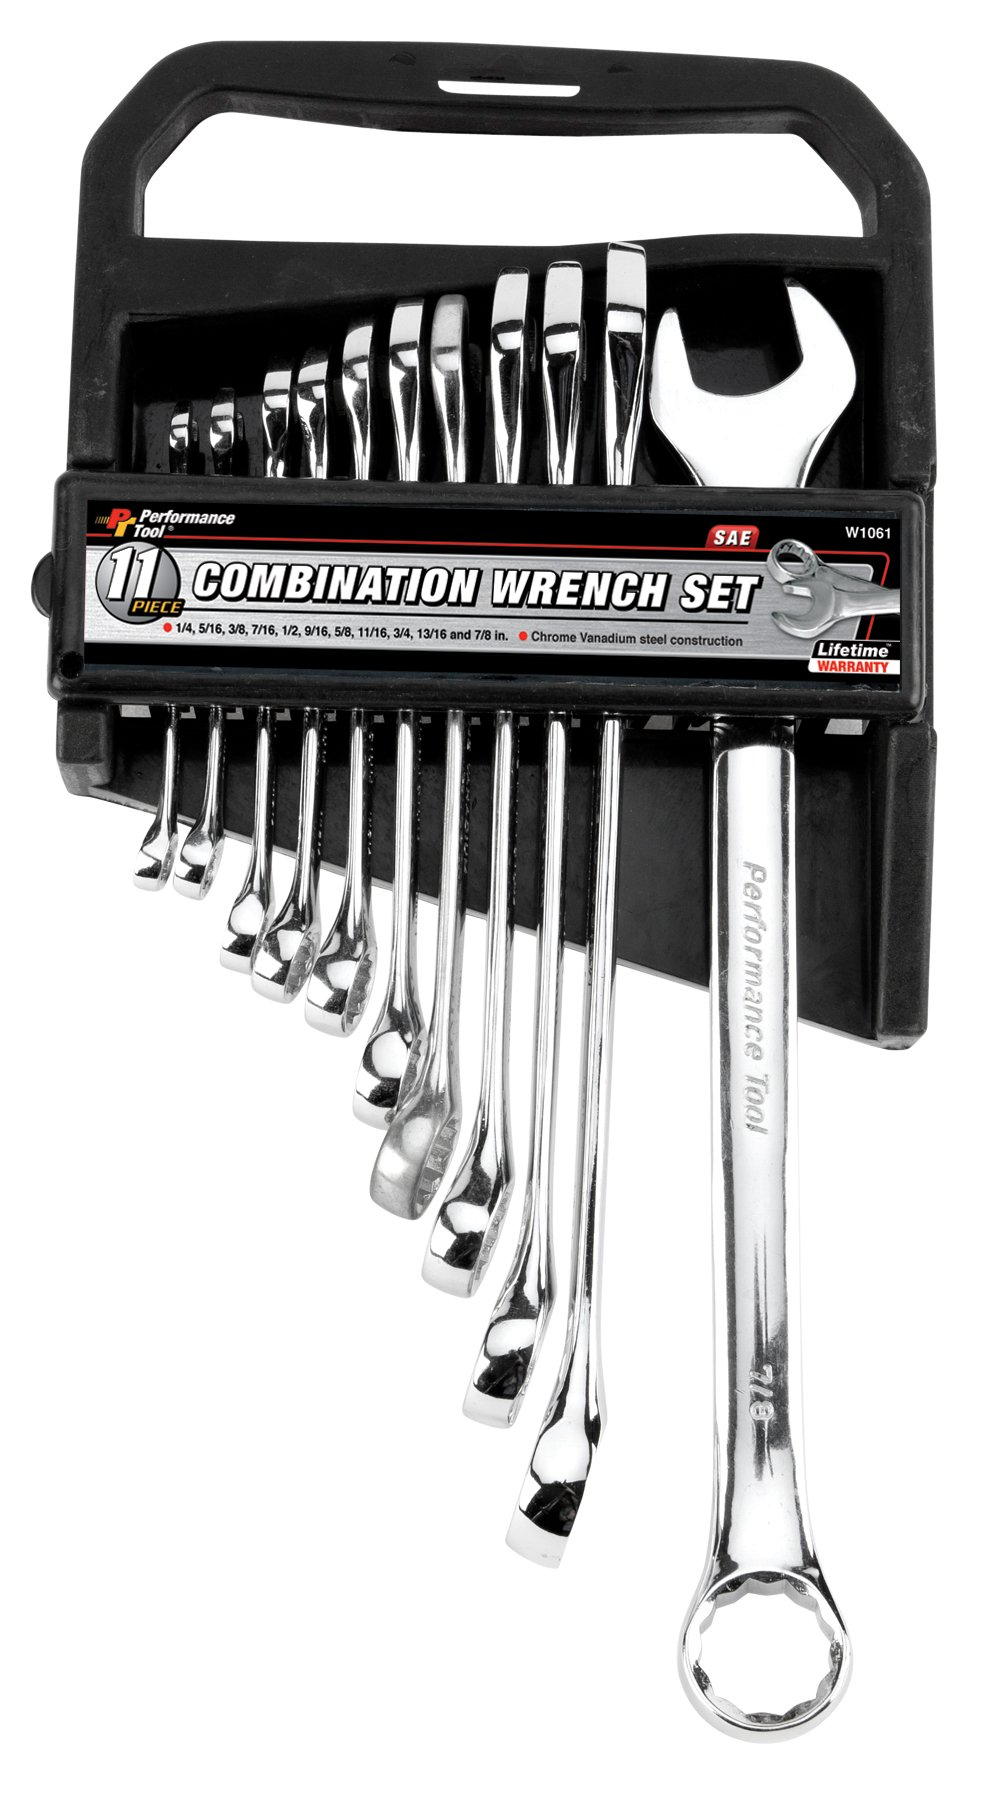 Performance Tool W1061 11 Piece SAE Fully Polished Combination Wrench Set with Rack